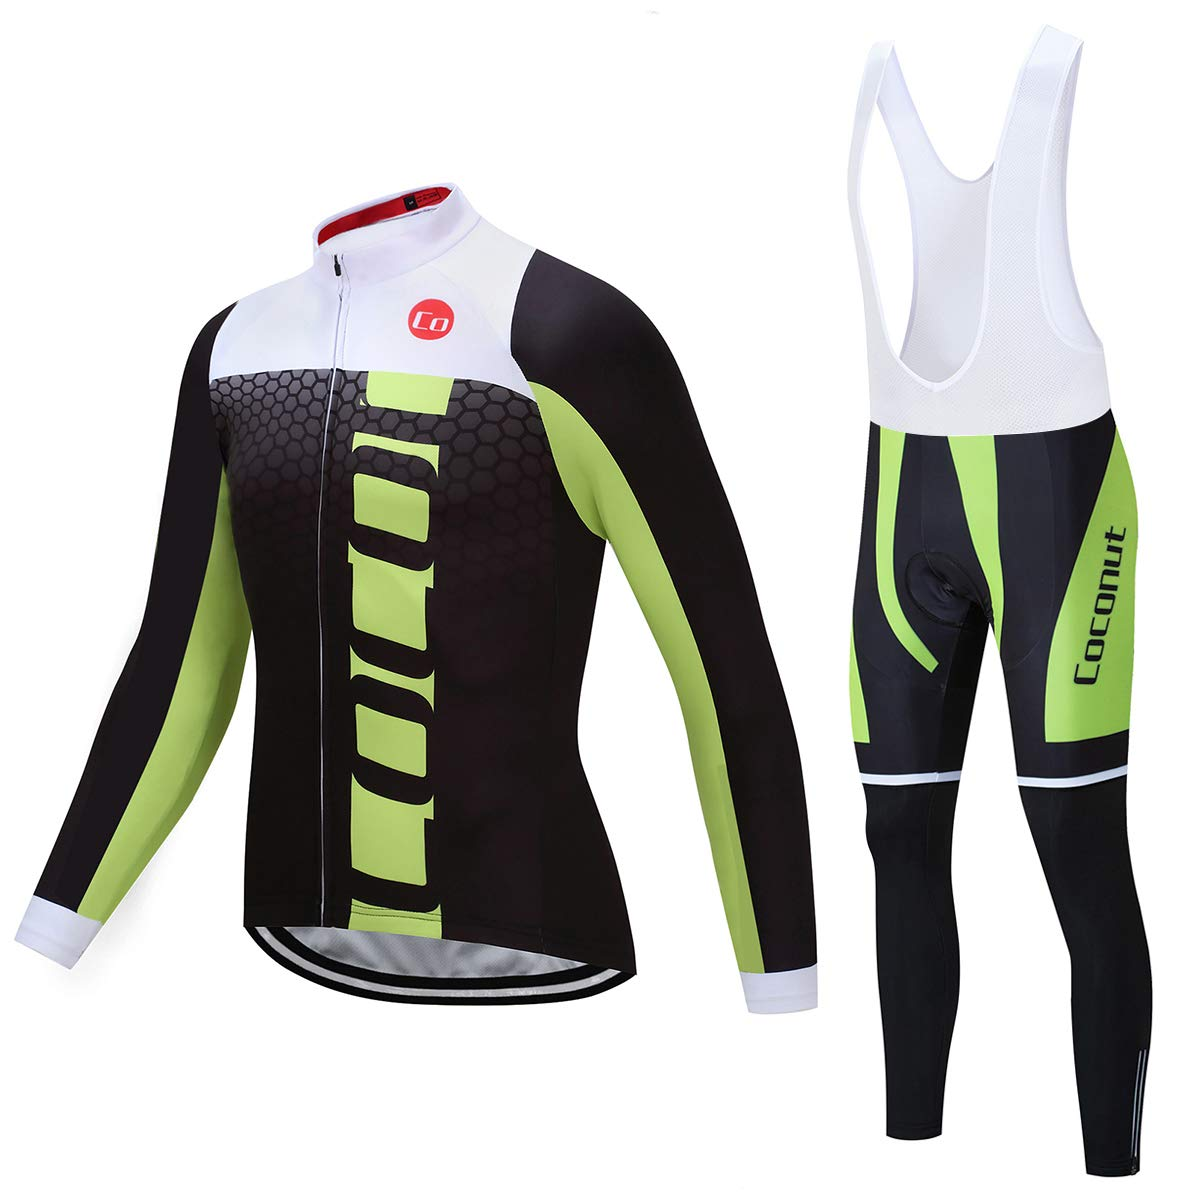 Coconut Ropamo Men's Cycling Jersey Suit Long Sleeve Road Bike Jersey Cycling Sets Tights with Padded (Medium, Black&Green) by Coconut Ropamo